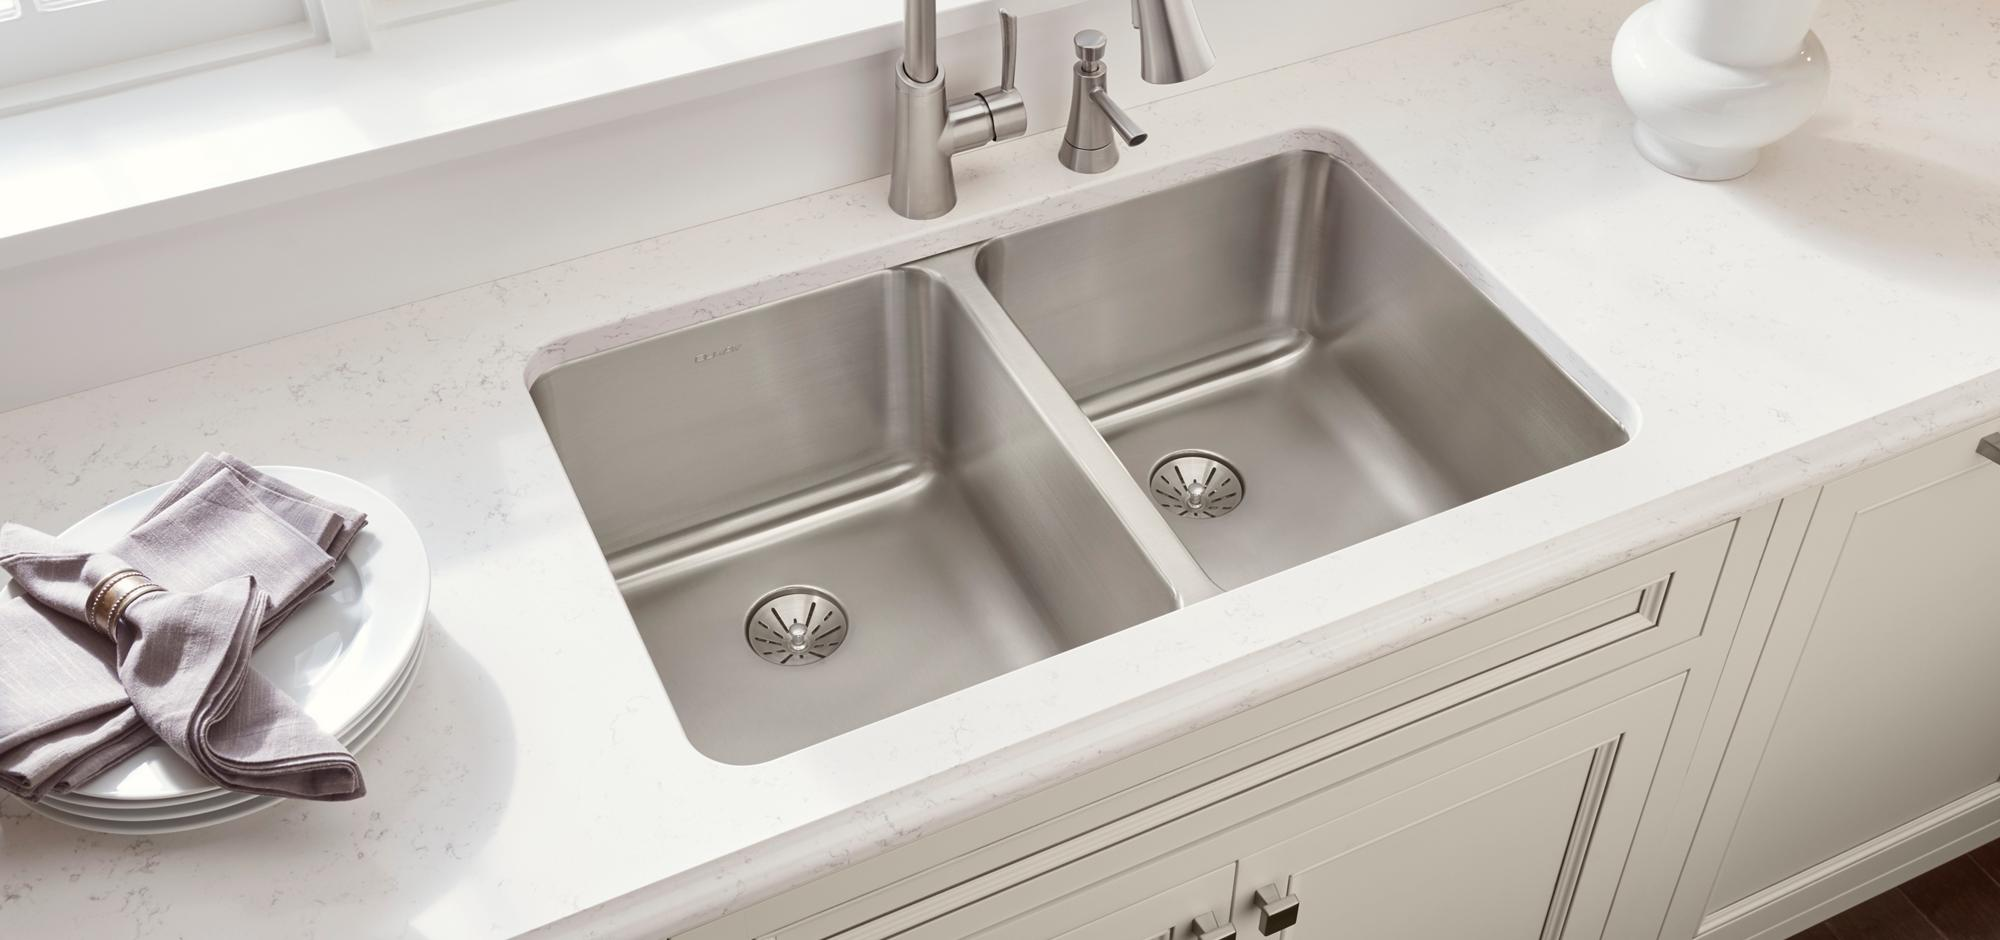 Elkay sink undermount